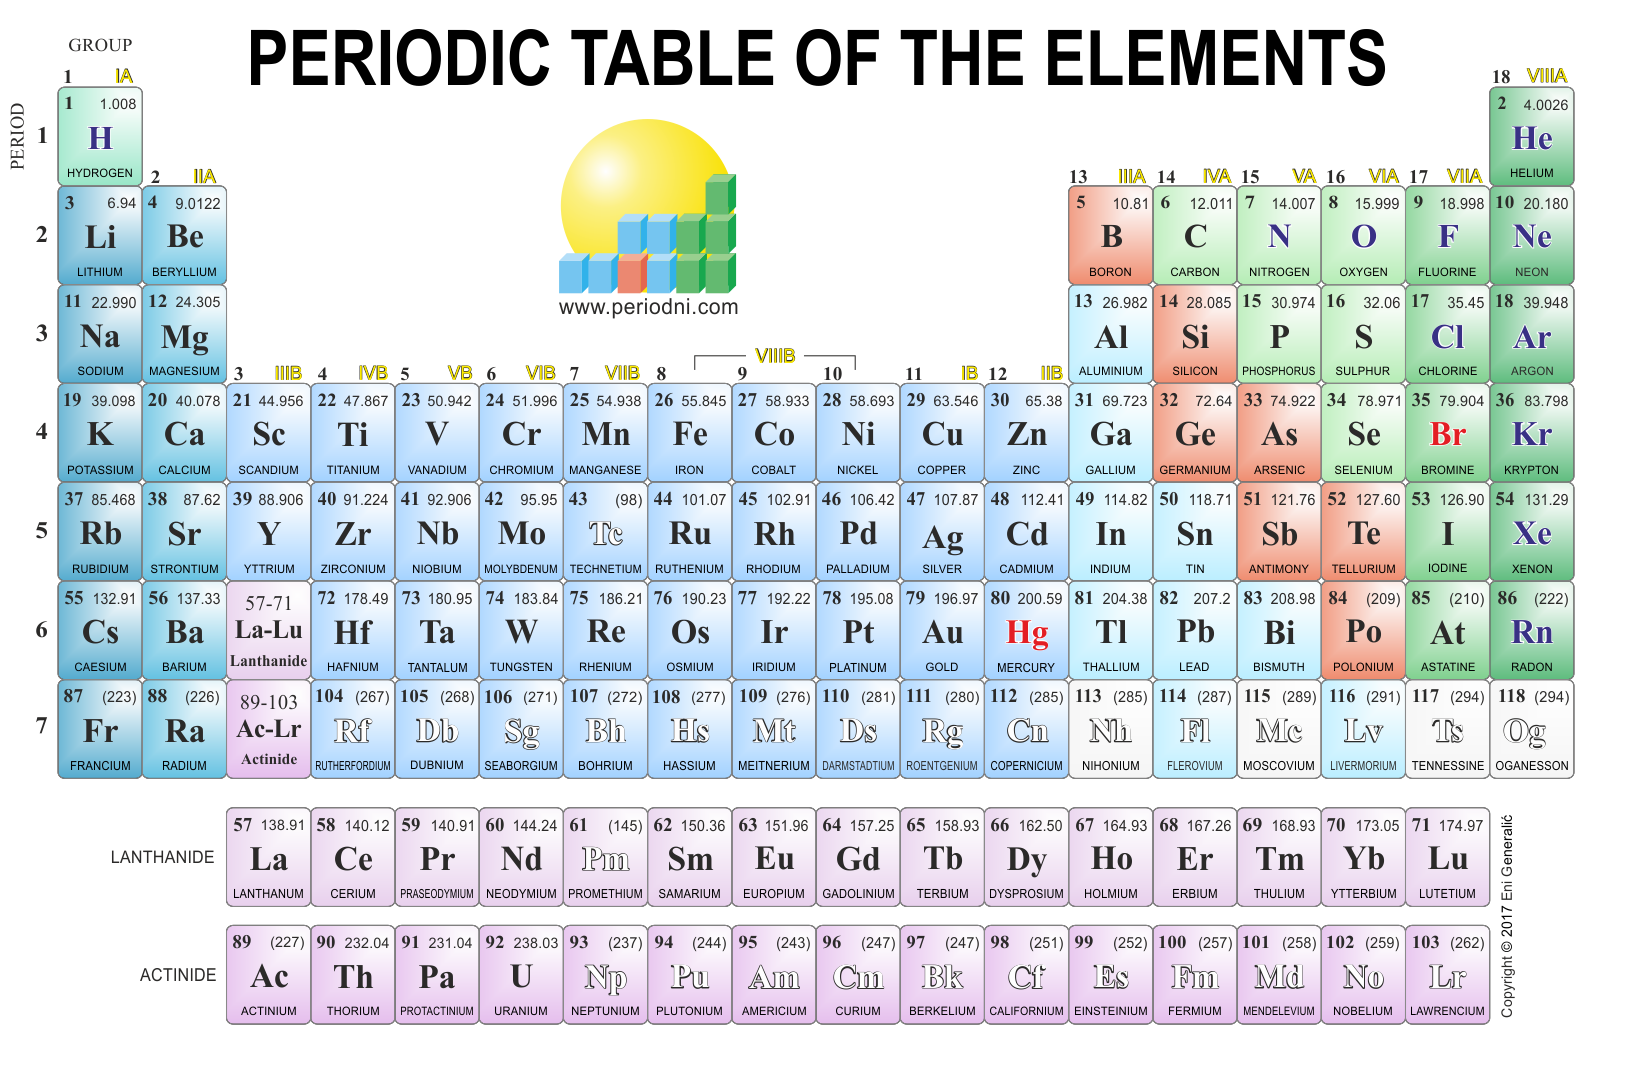 Direct download link: https://www.periodni.com/gallery/periodic_table-1632x1080-light_background.png